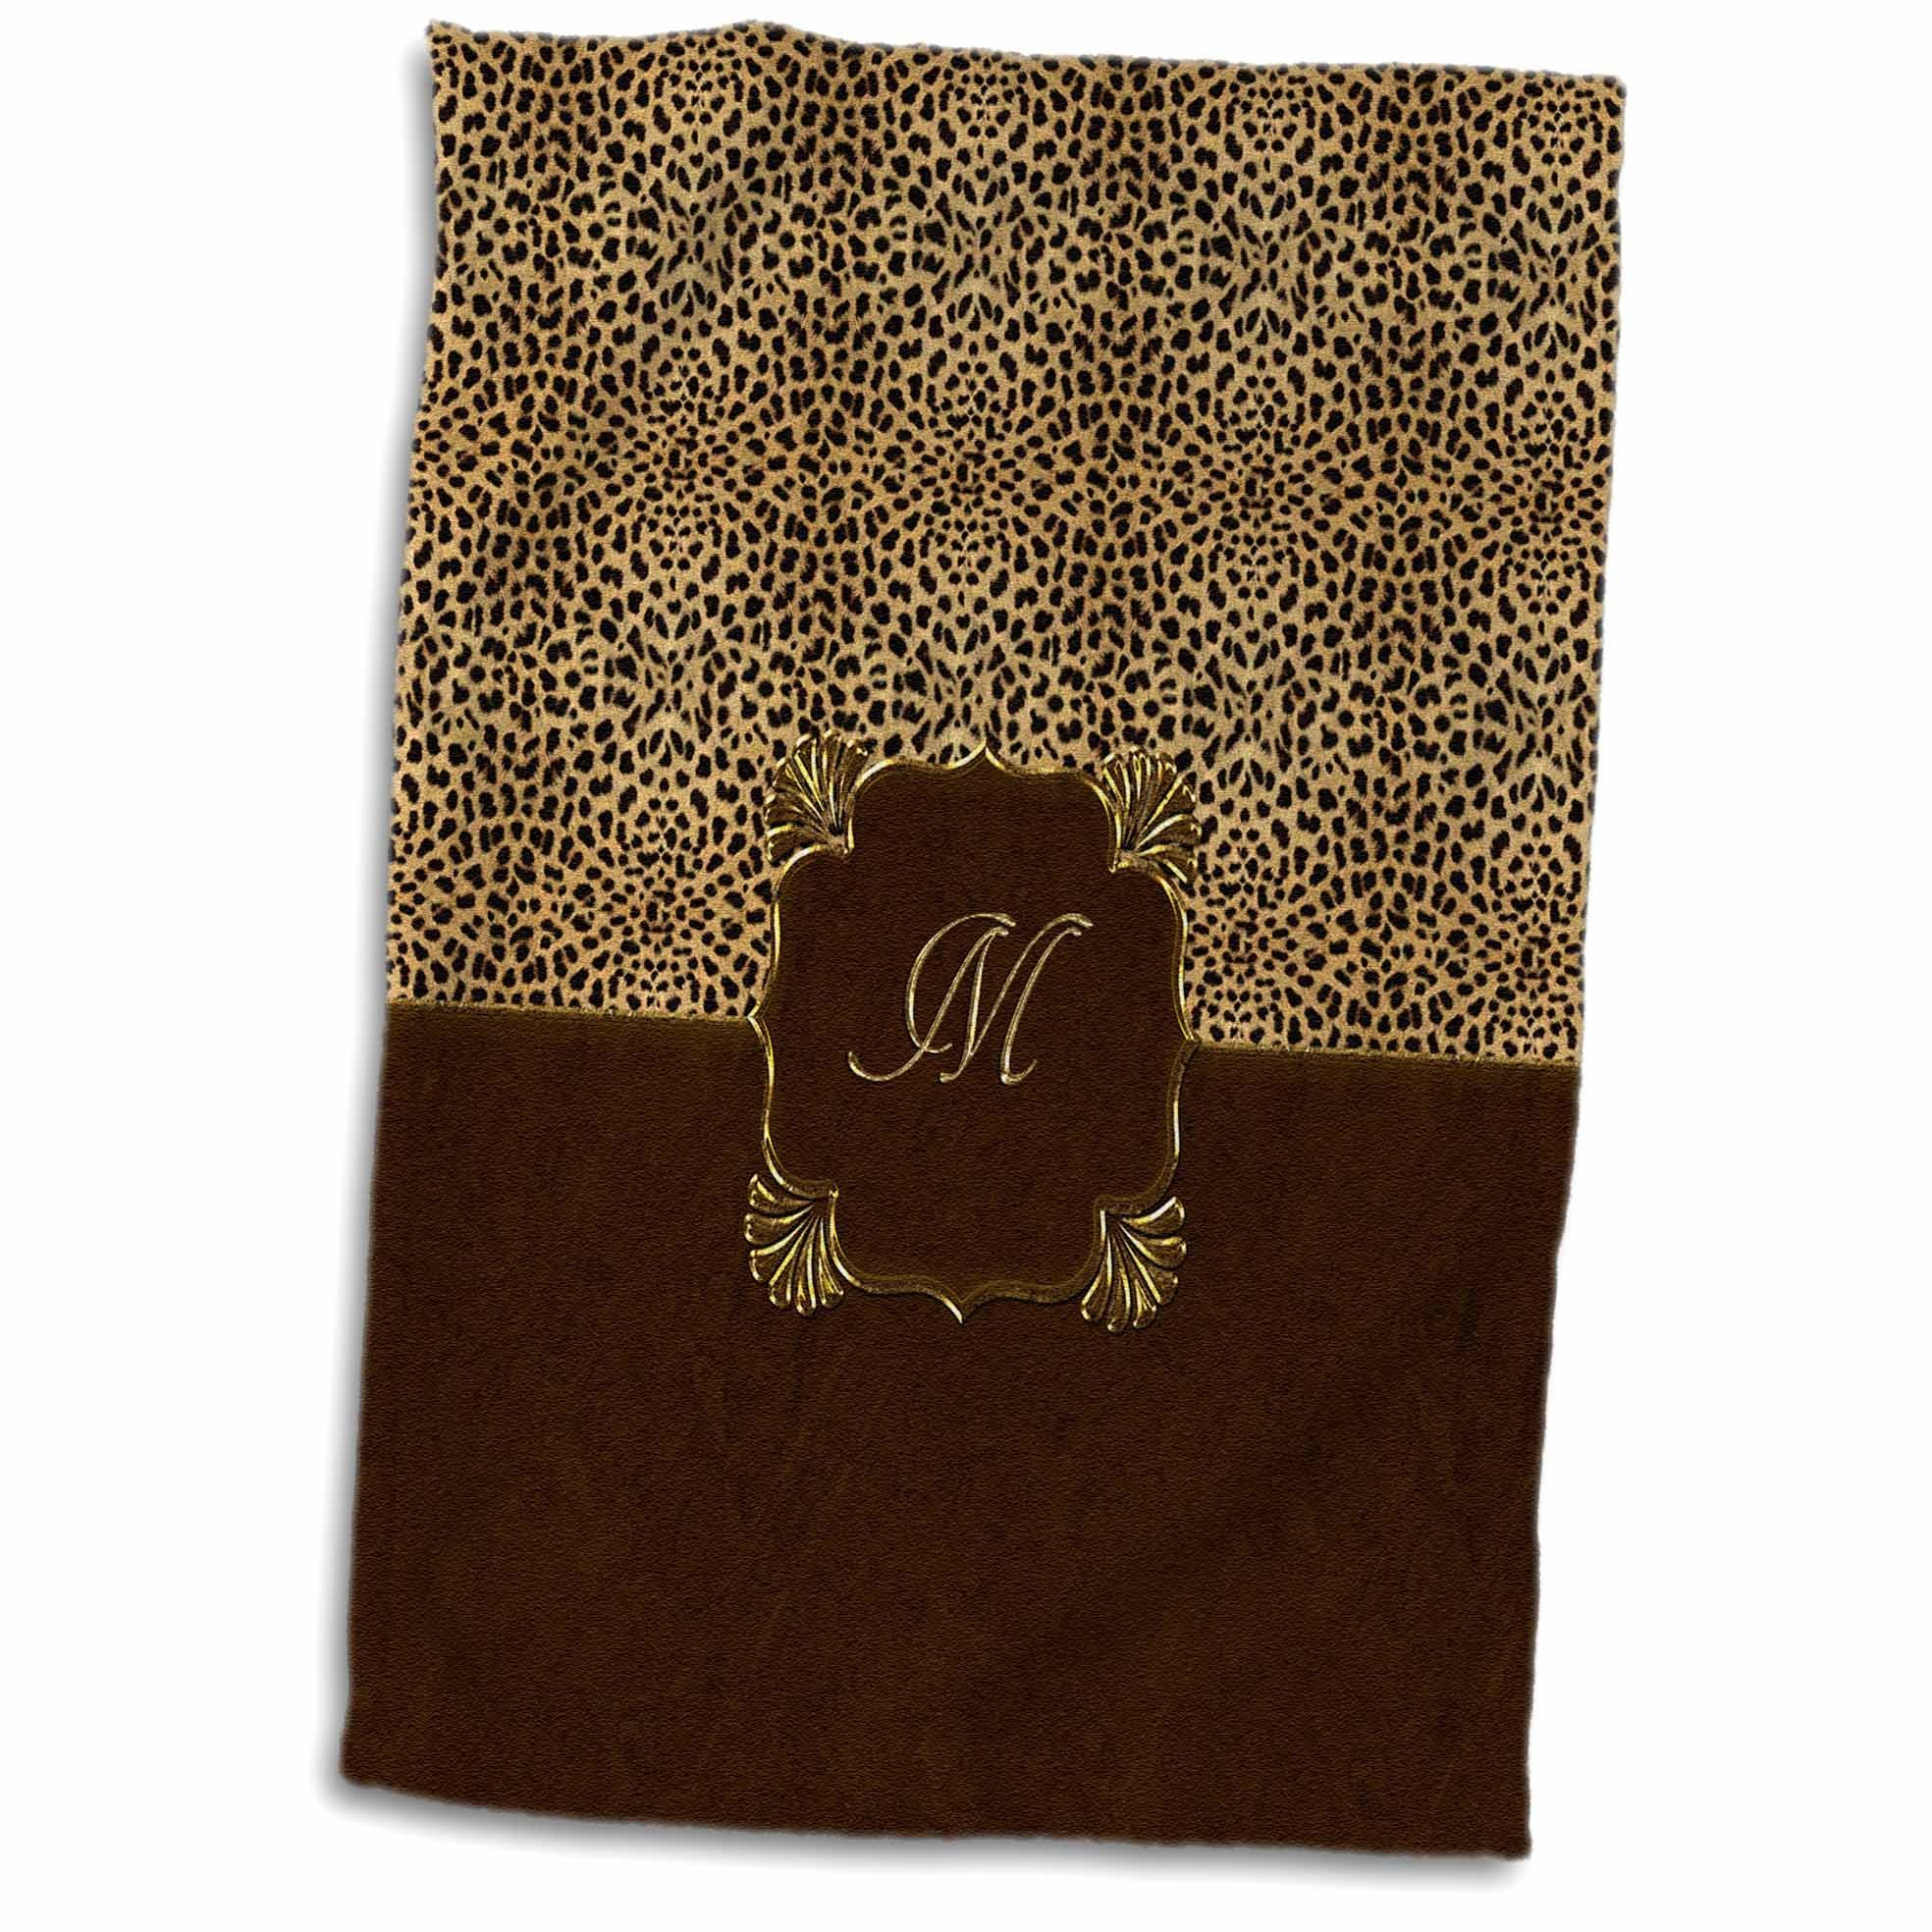 3D Rose Elegant Cheetah Animal Print with Gold Framed Monogram Letter M Hand/Sports Towel, 15 x 22